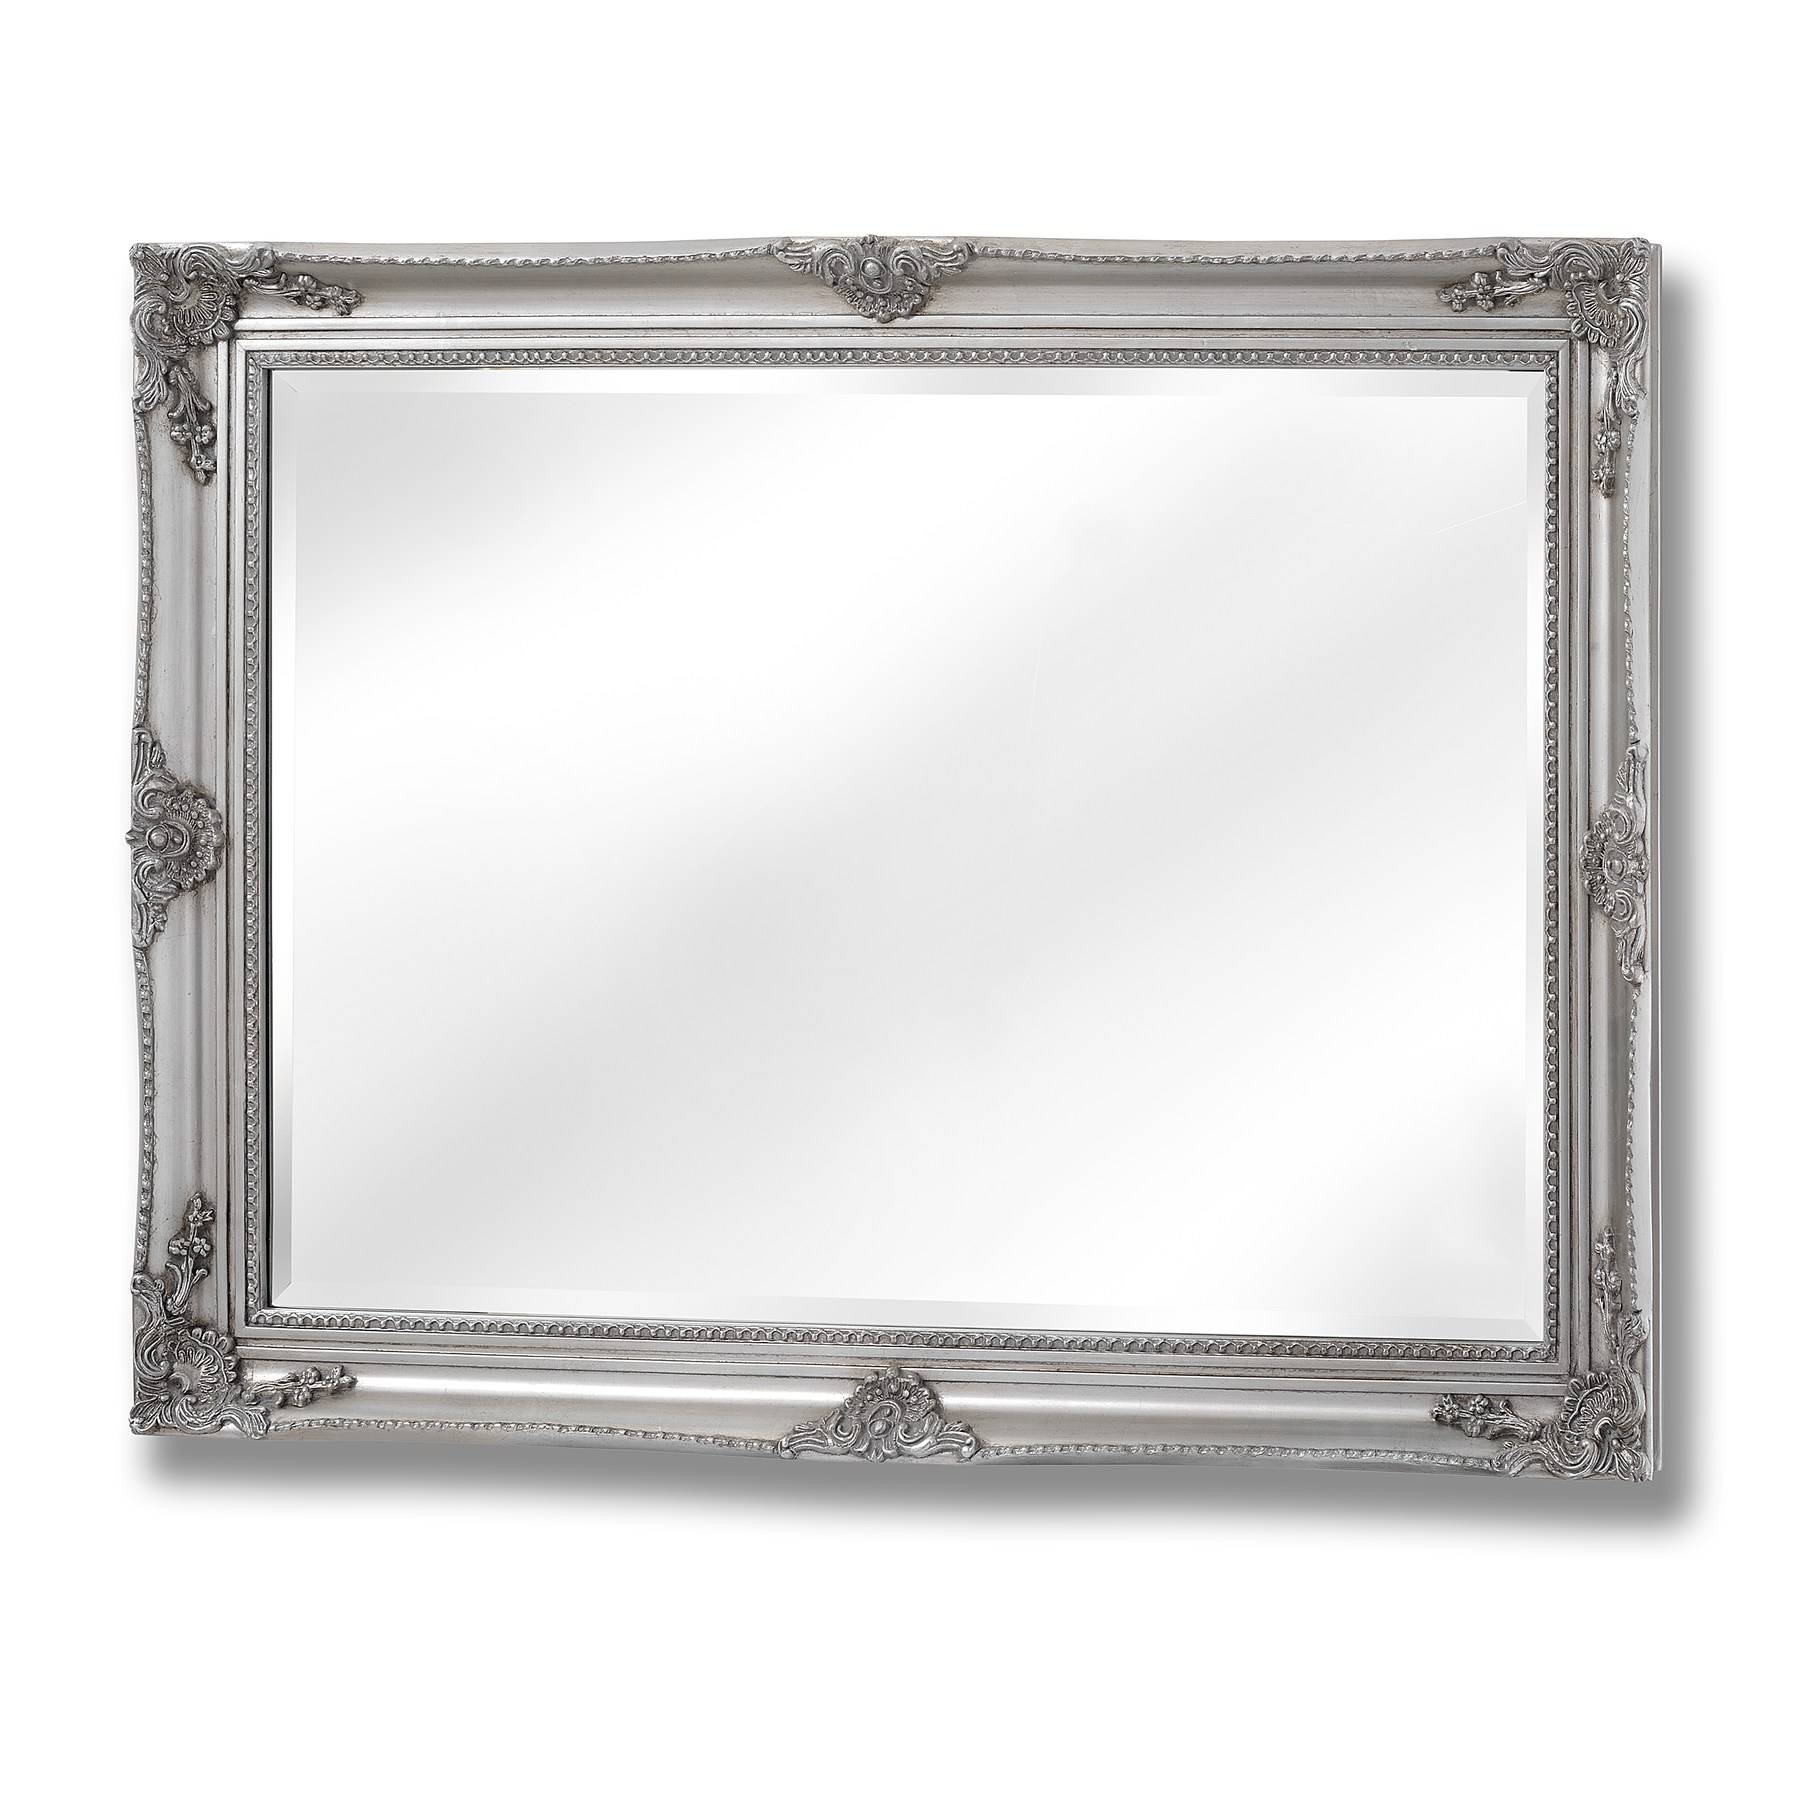 Baroque Style Large Silver Wall Mirror | Happy Home Interiors regarding Baroque Style Mirrors (Image 7 of 25)